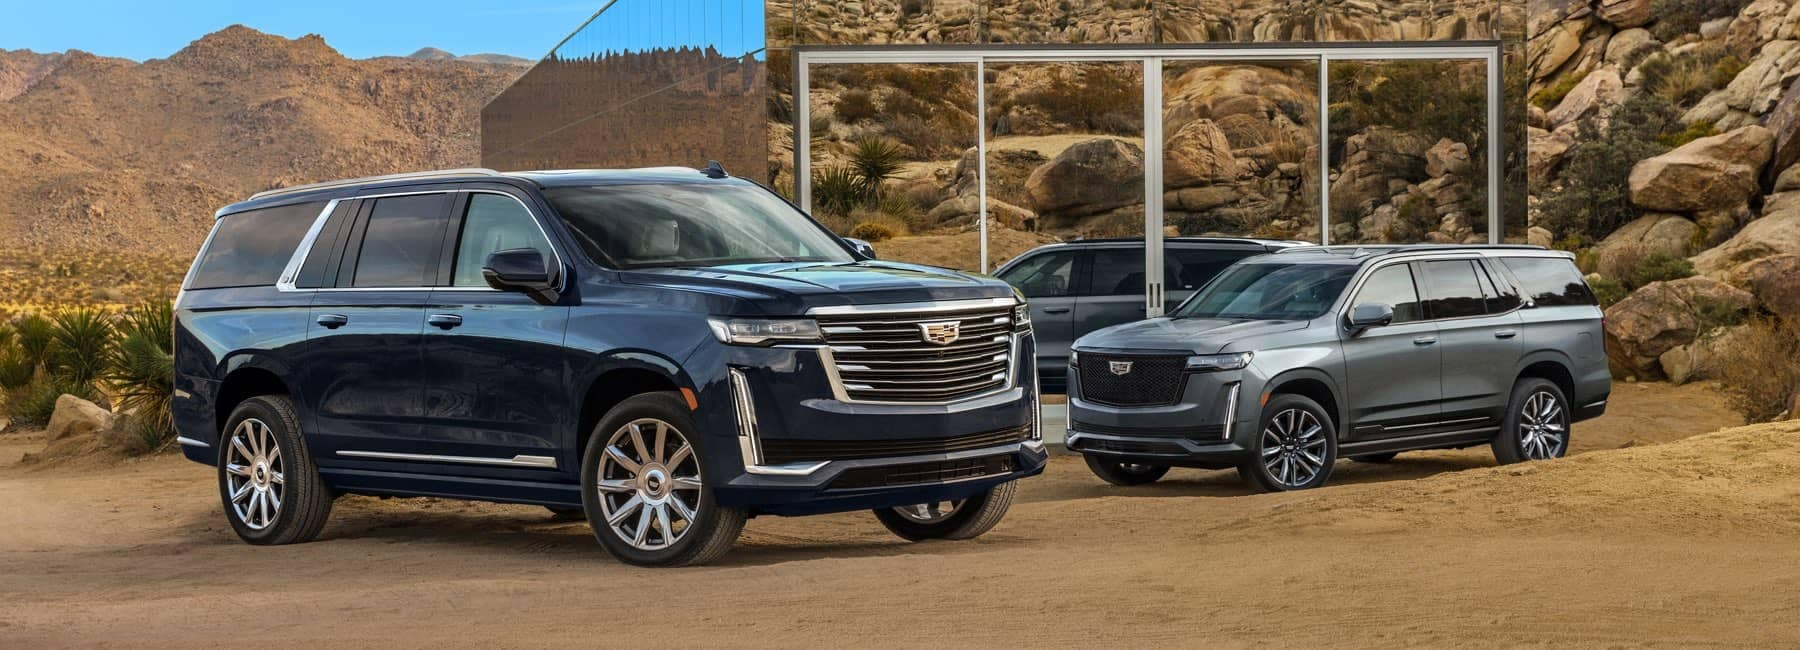 Two 2021 Cadillac Escalades parked in front of a glass house